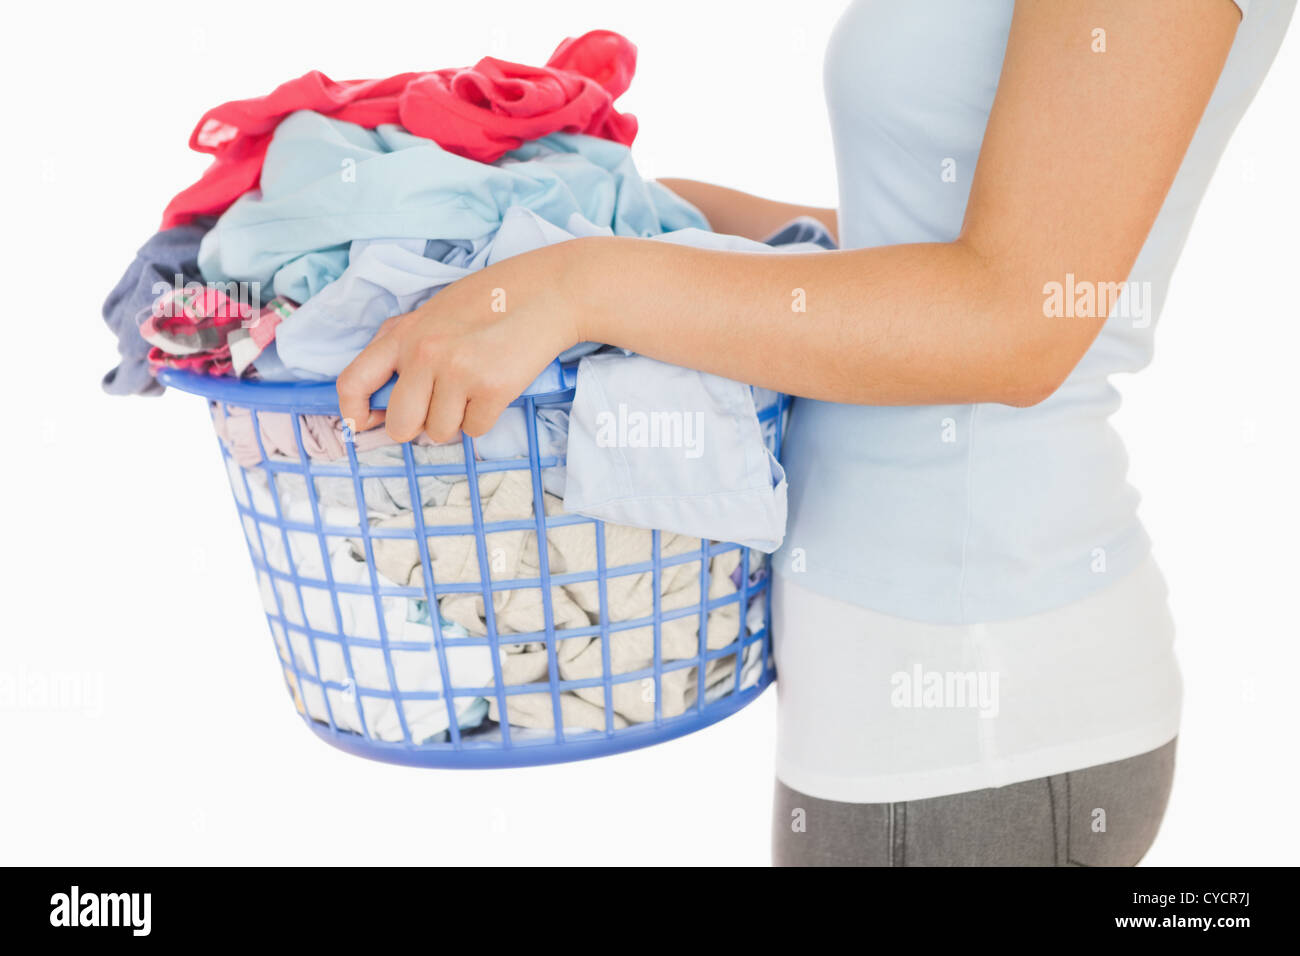 Woman holding a basket overflowing of laundry - Stock Image